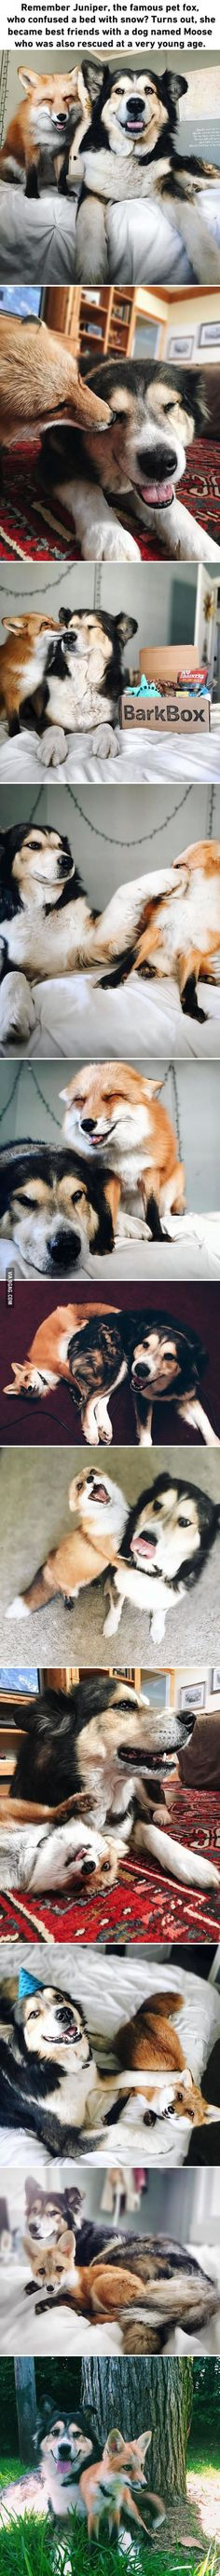 Pet Fox Becomes Best Friends With A Dog. Omg these two are so cute! I want them!